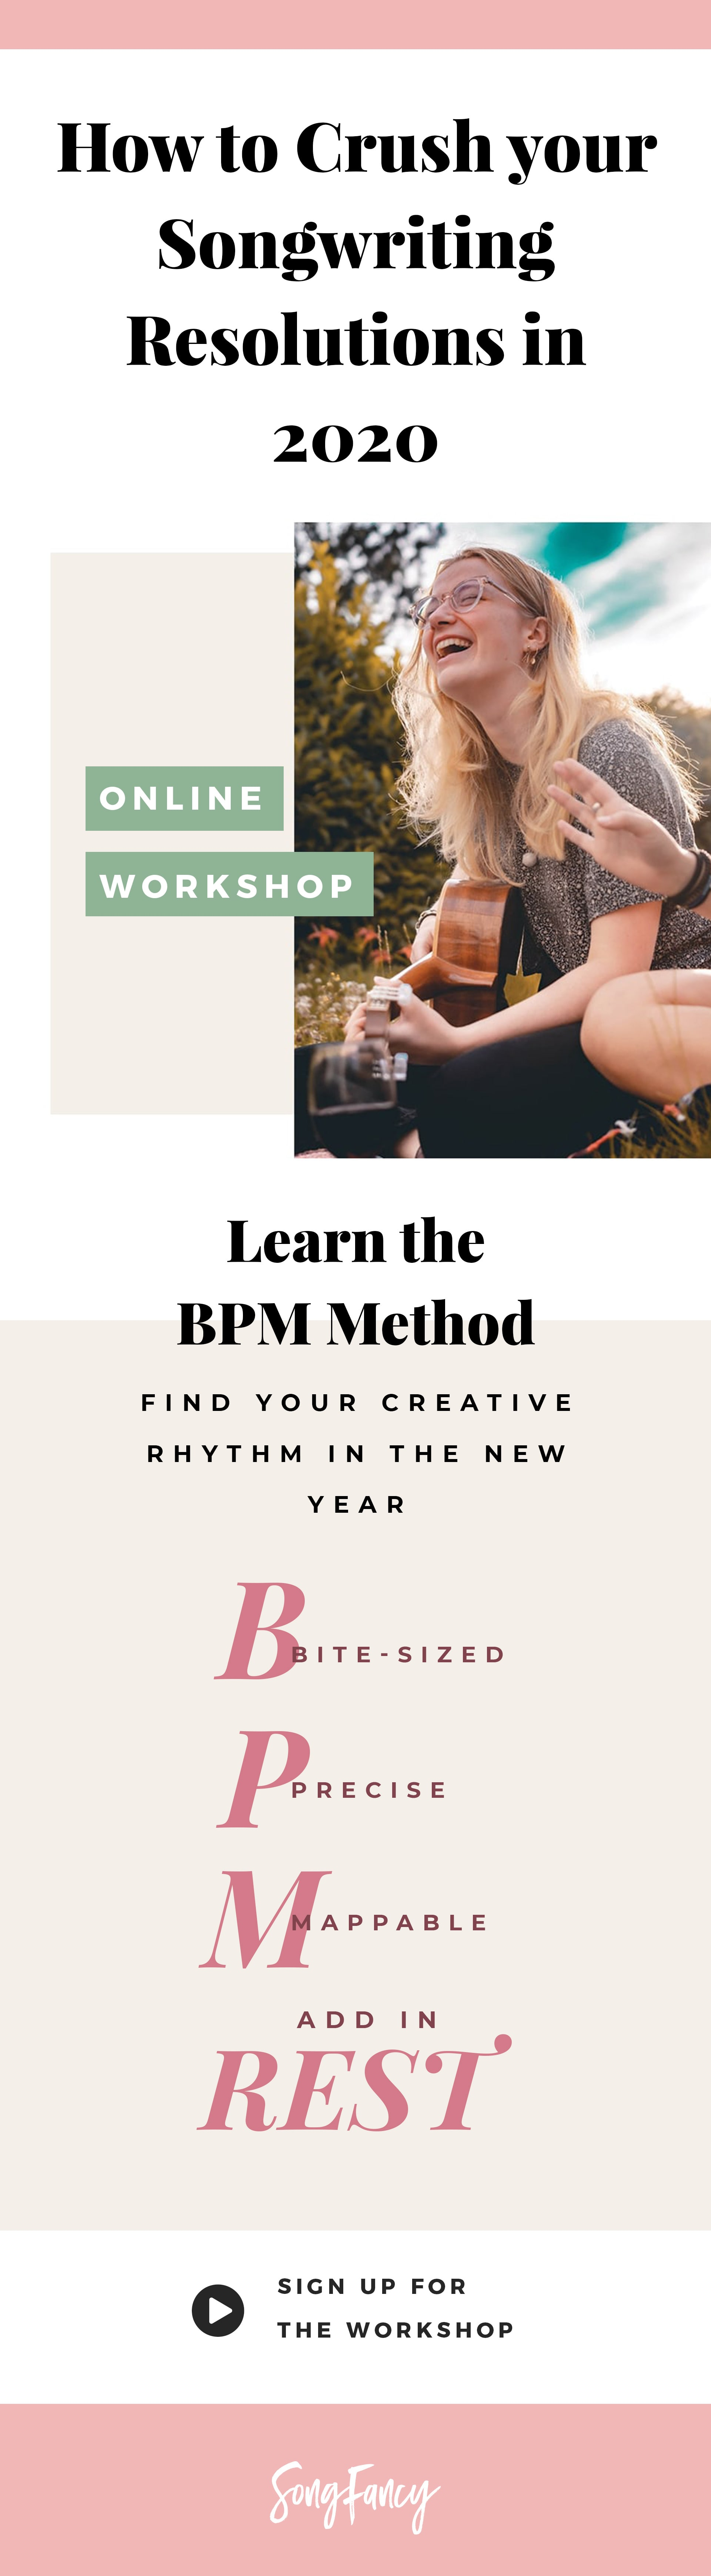 Songwriting Workshop: How to Crush Your Goals in 2020 - Learn SongFancy's BPM method for finding your rhythm this year!